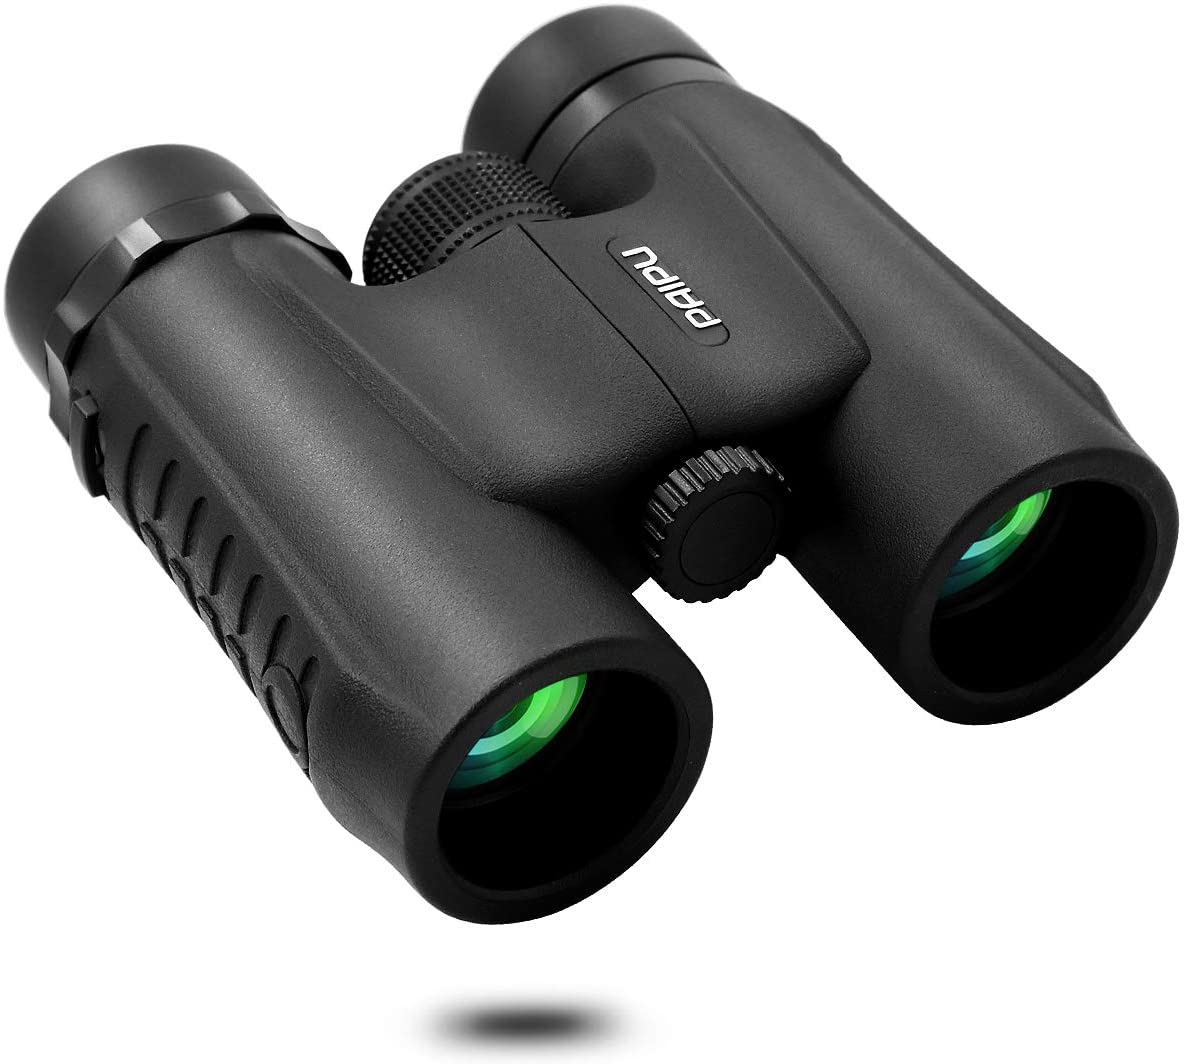 Top 10 Best Compact Binoculars 2021 Reviews 7